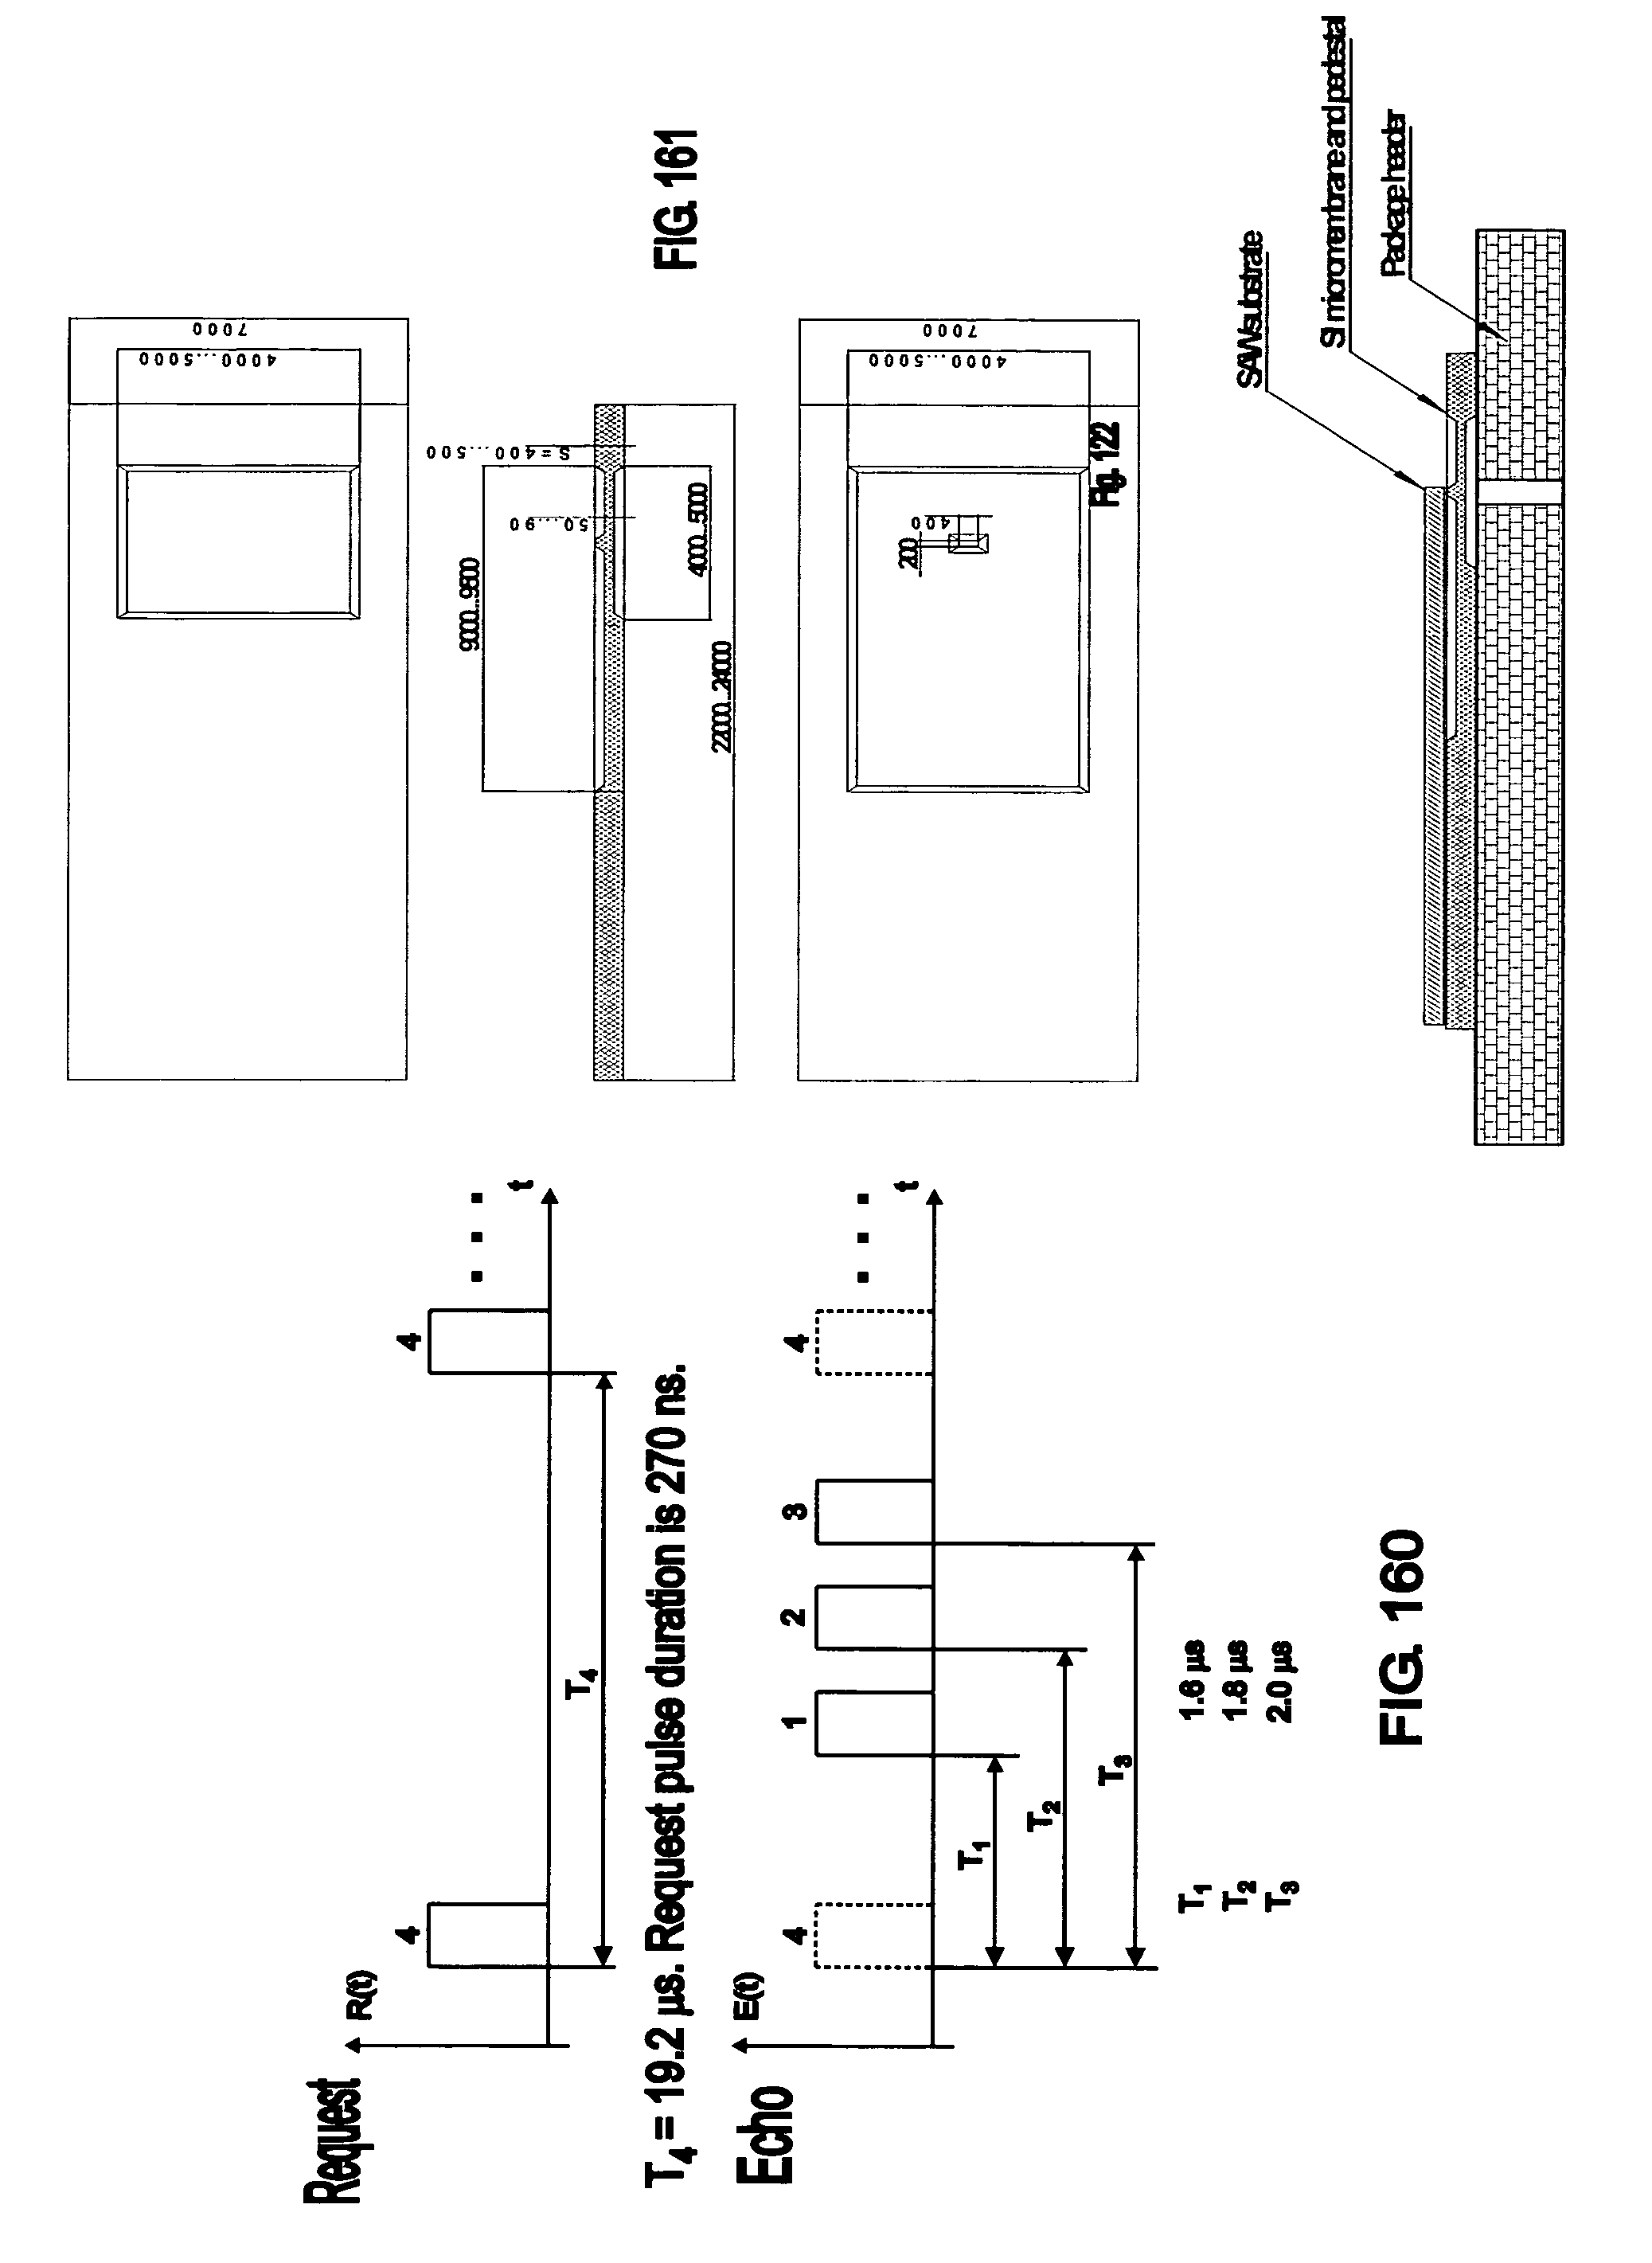 Patent Us 7103460 B1 Wiring Diagram 2007 Carryall 6 Images